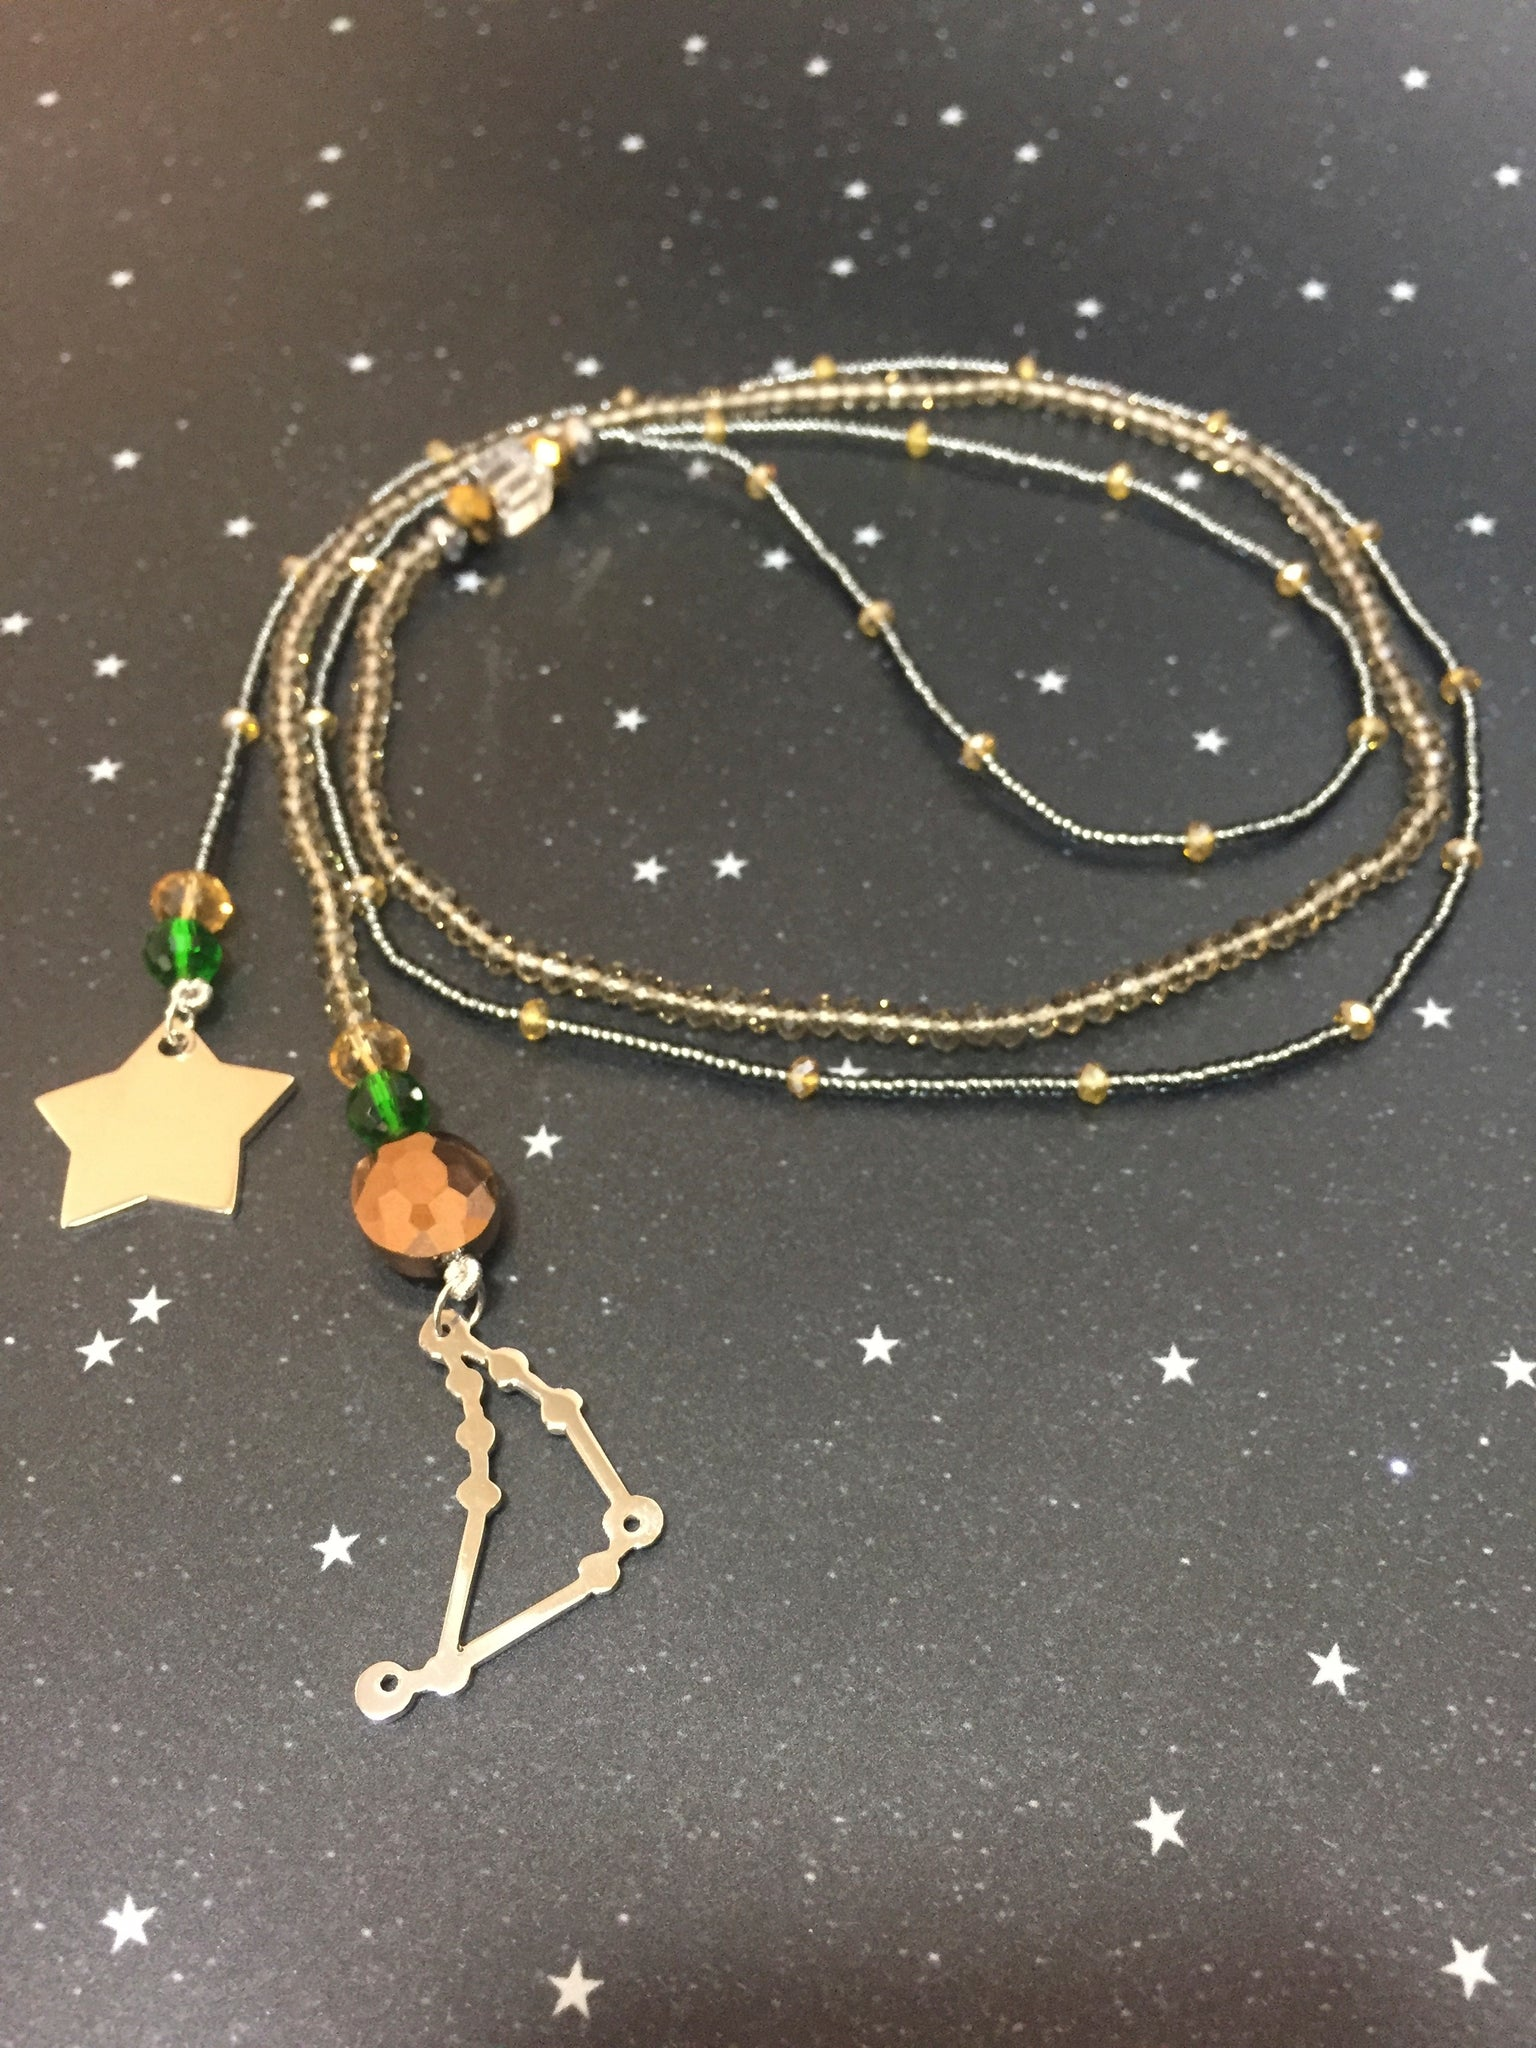 Long Open 'CAPRICORN' Necklace with Star - Riddhika Jesrani